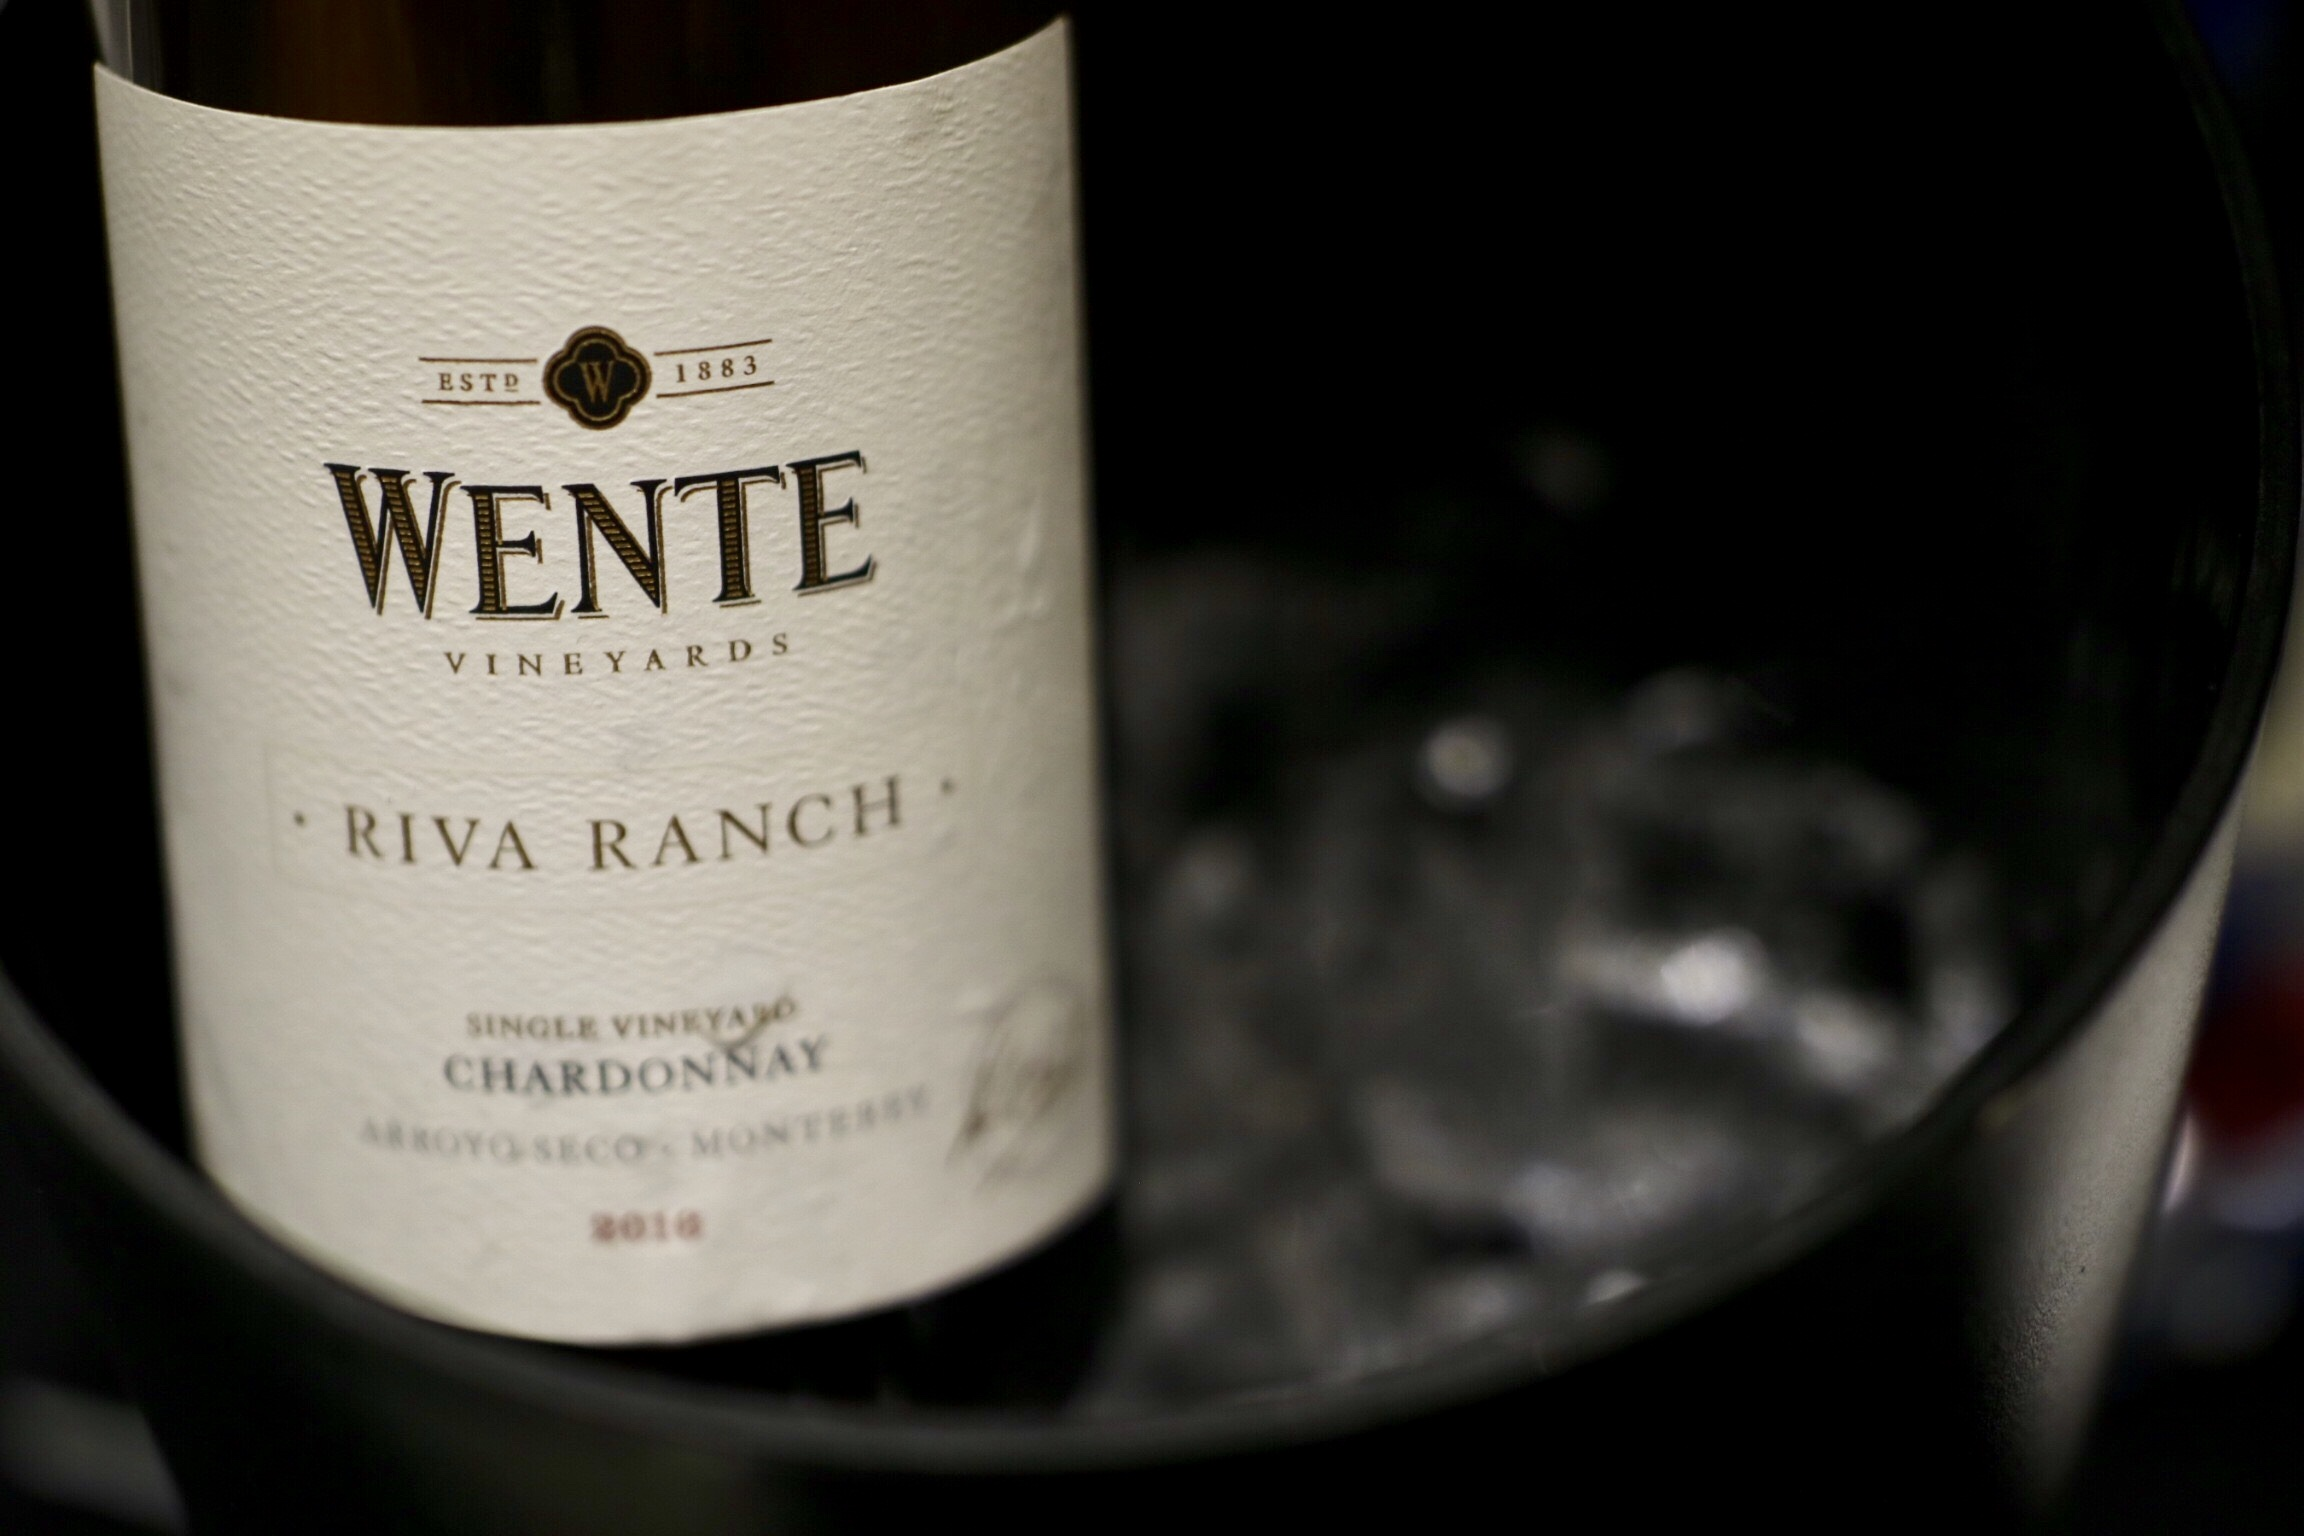 Riva Ranch Single Vineyard Chardonnay 2016